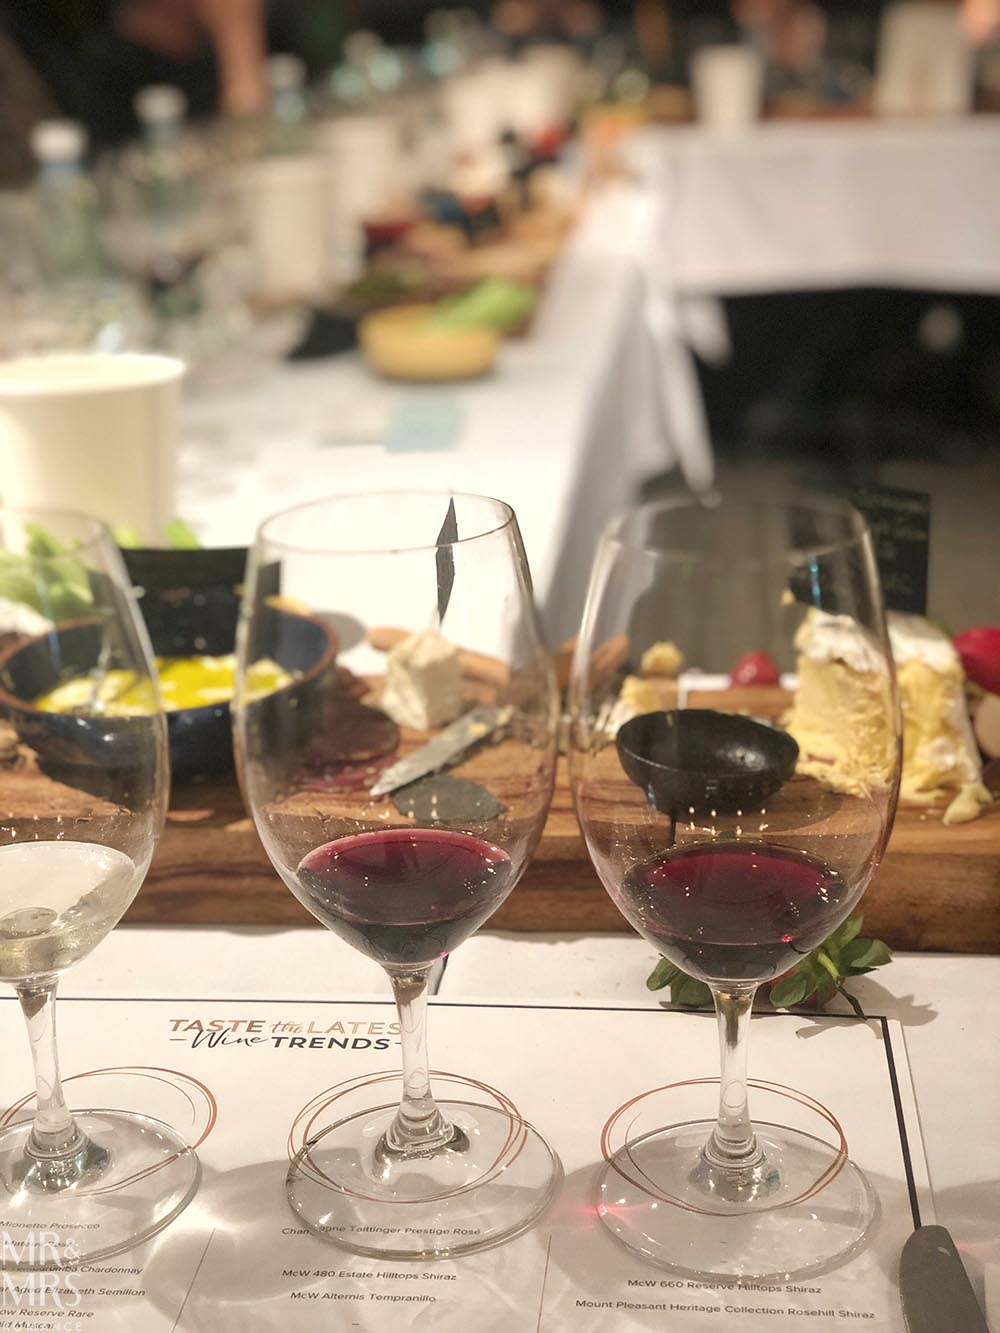 McWilliams wine trends masterclass